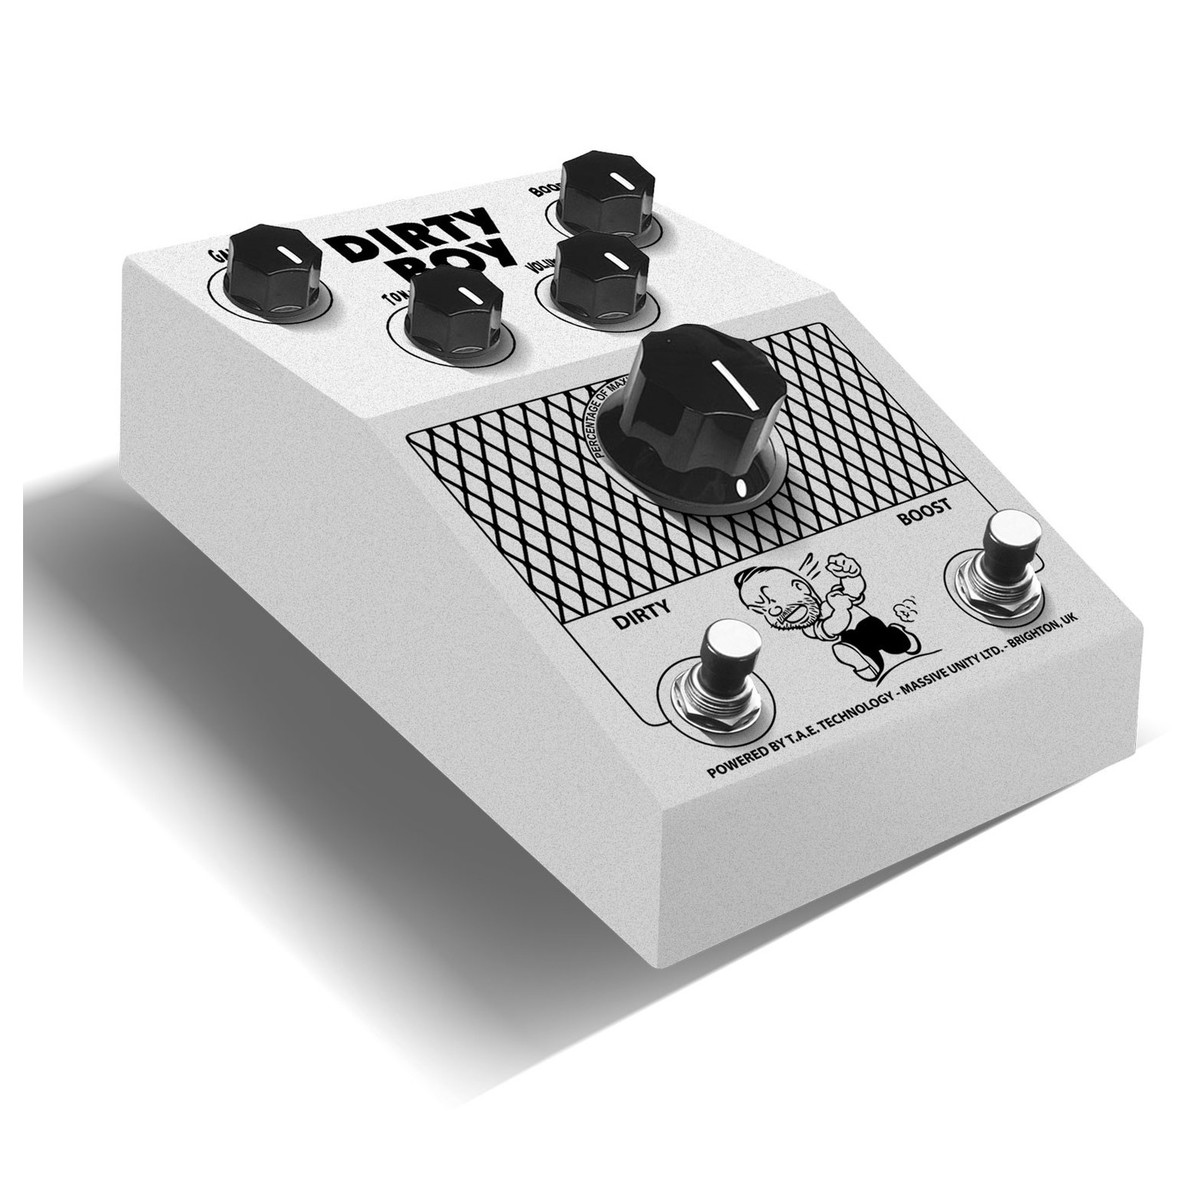 Massive Unity Dirty Boy Preamp At Gear4music Electric Guitar Violin Preamplifier Angle Loading Zoom